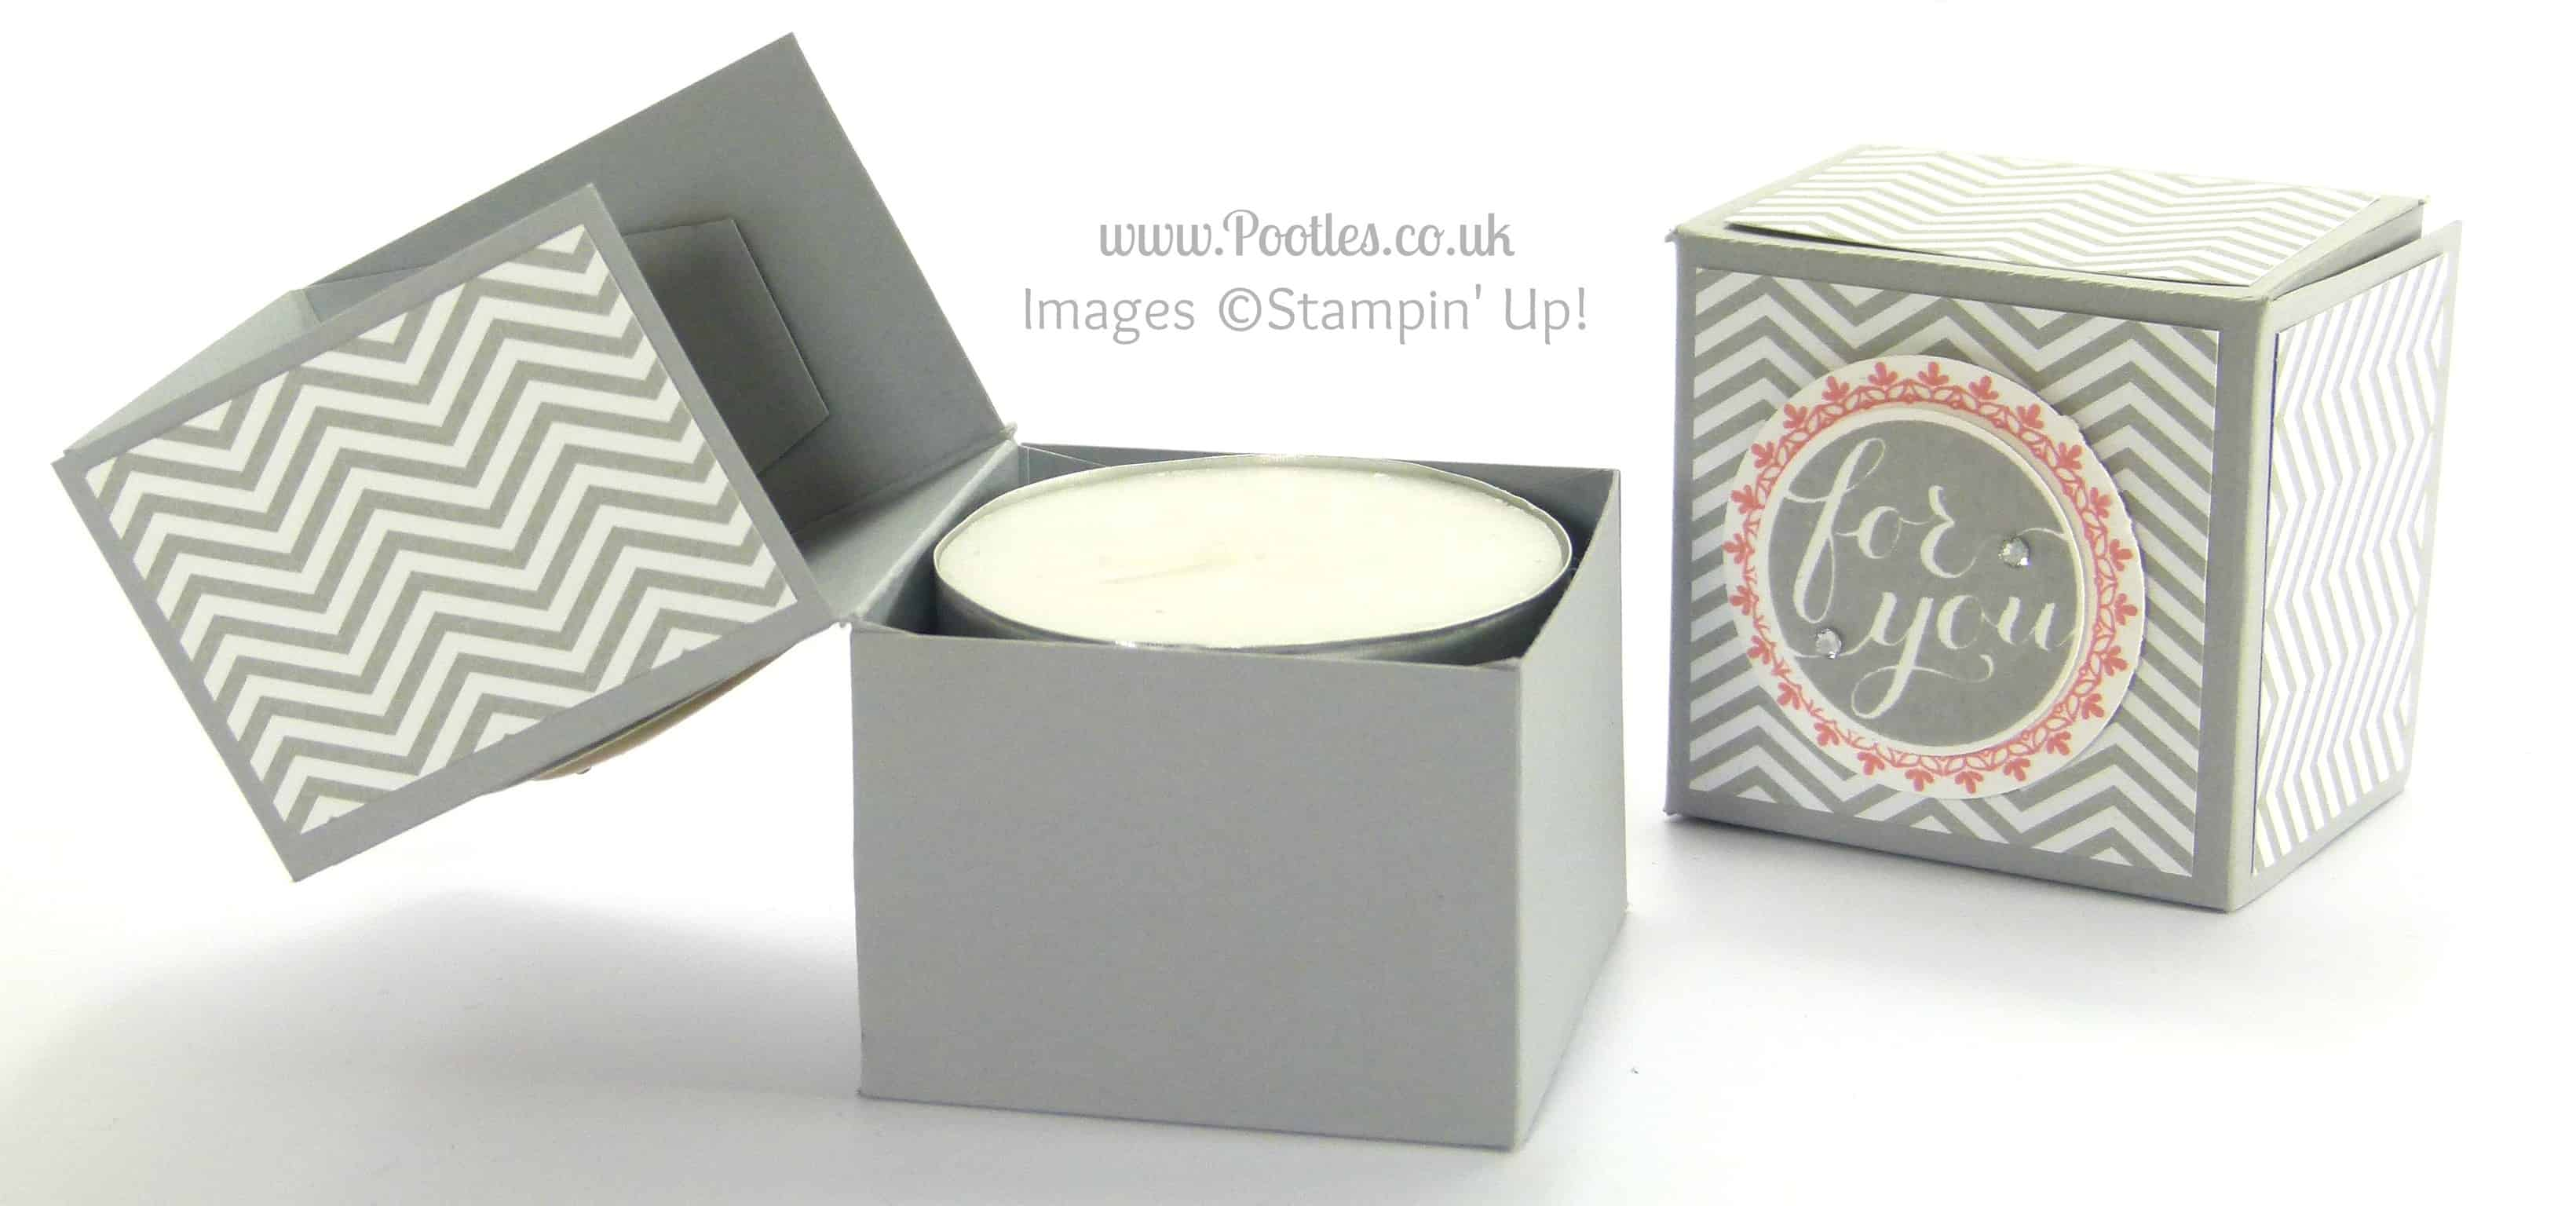 Stampin' Up! UK Demonstrator Pootles - Pillow Gifts (Double Giant Tea Light Treat Box)